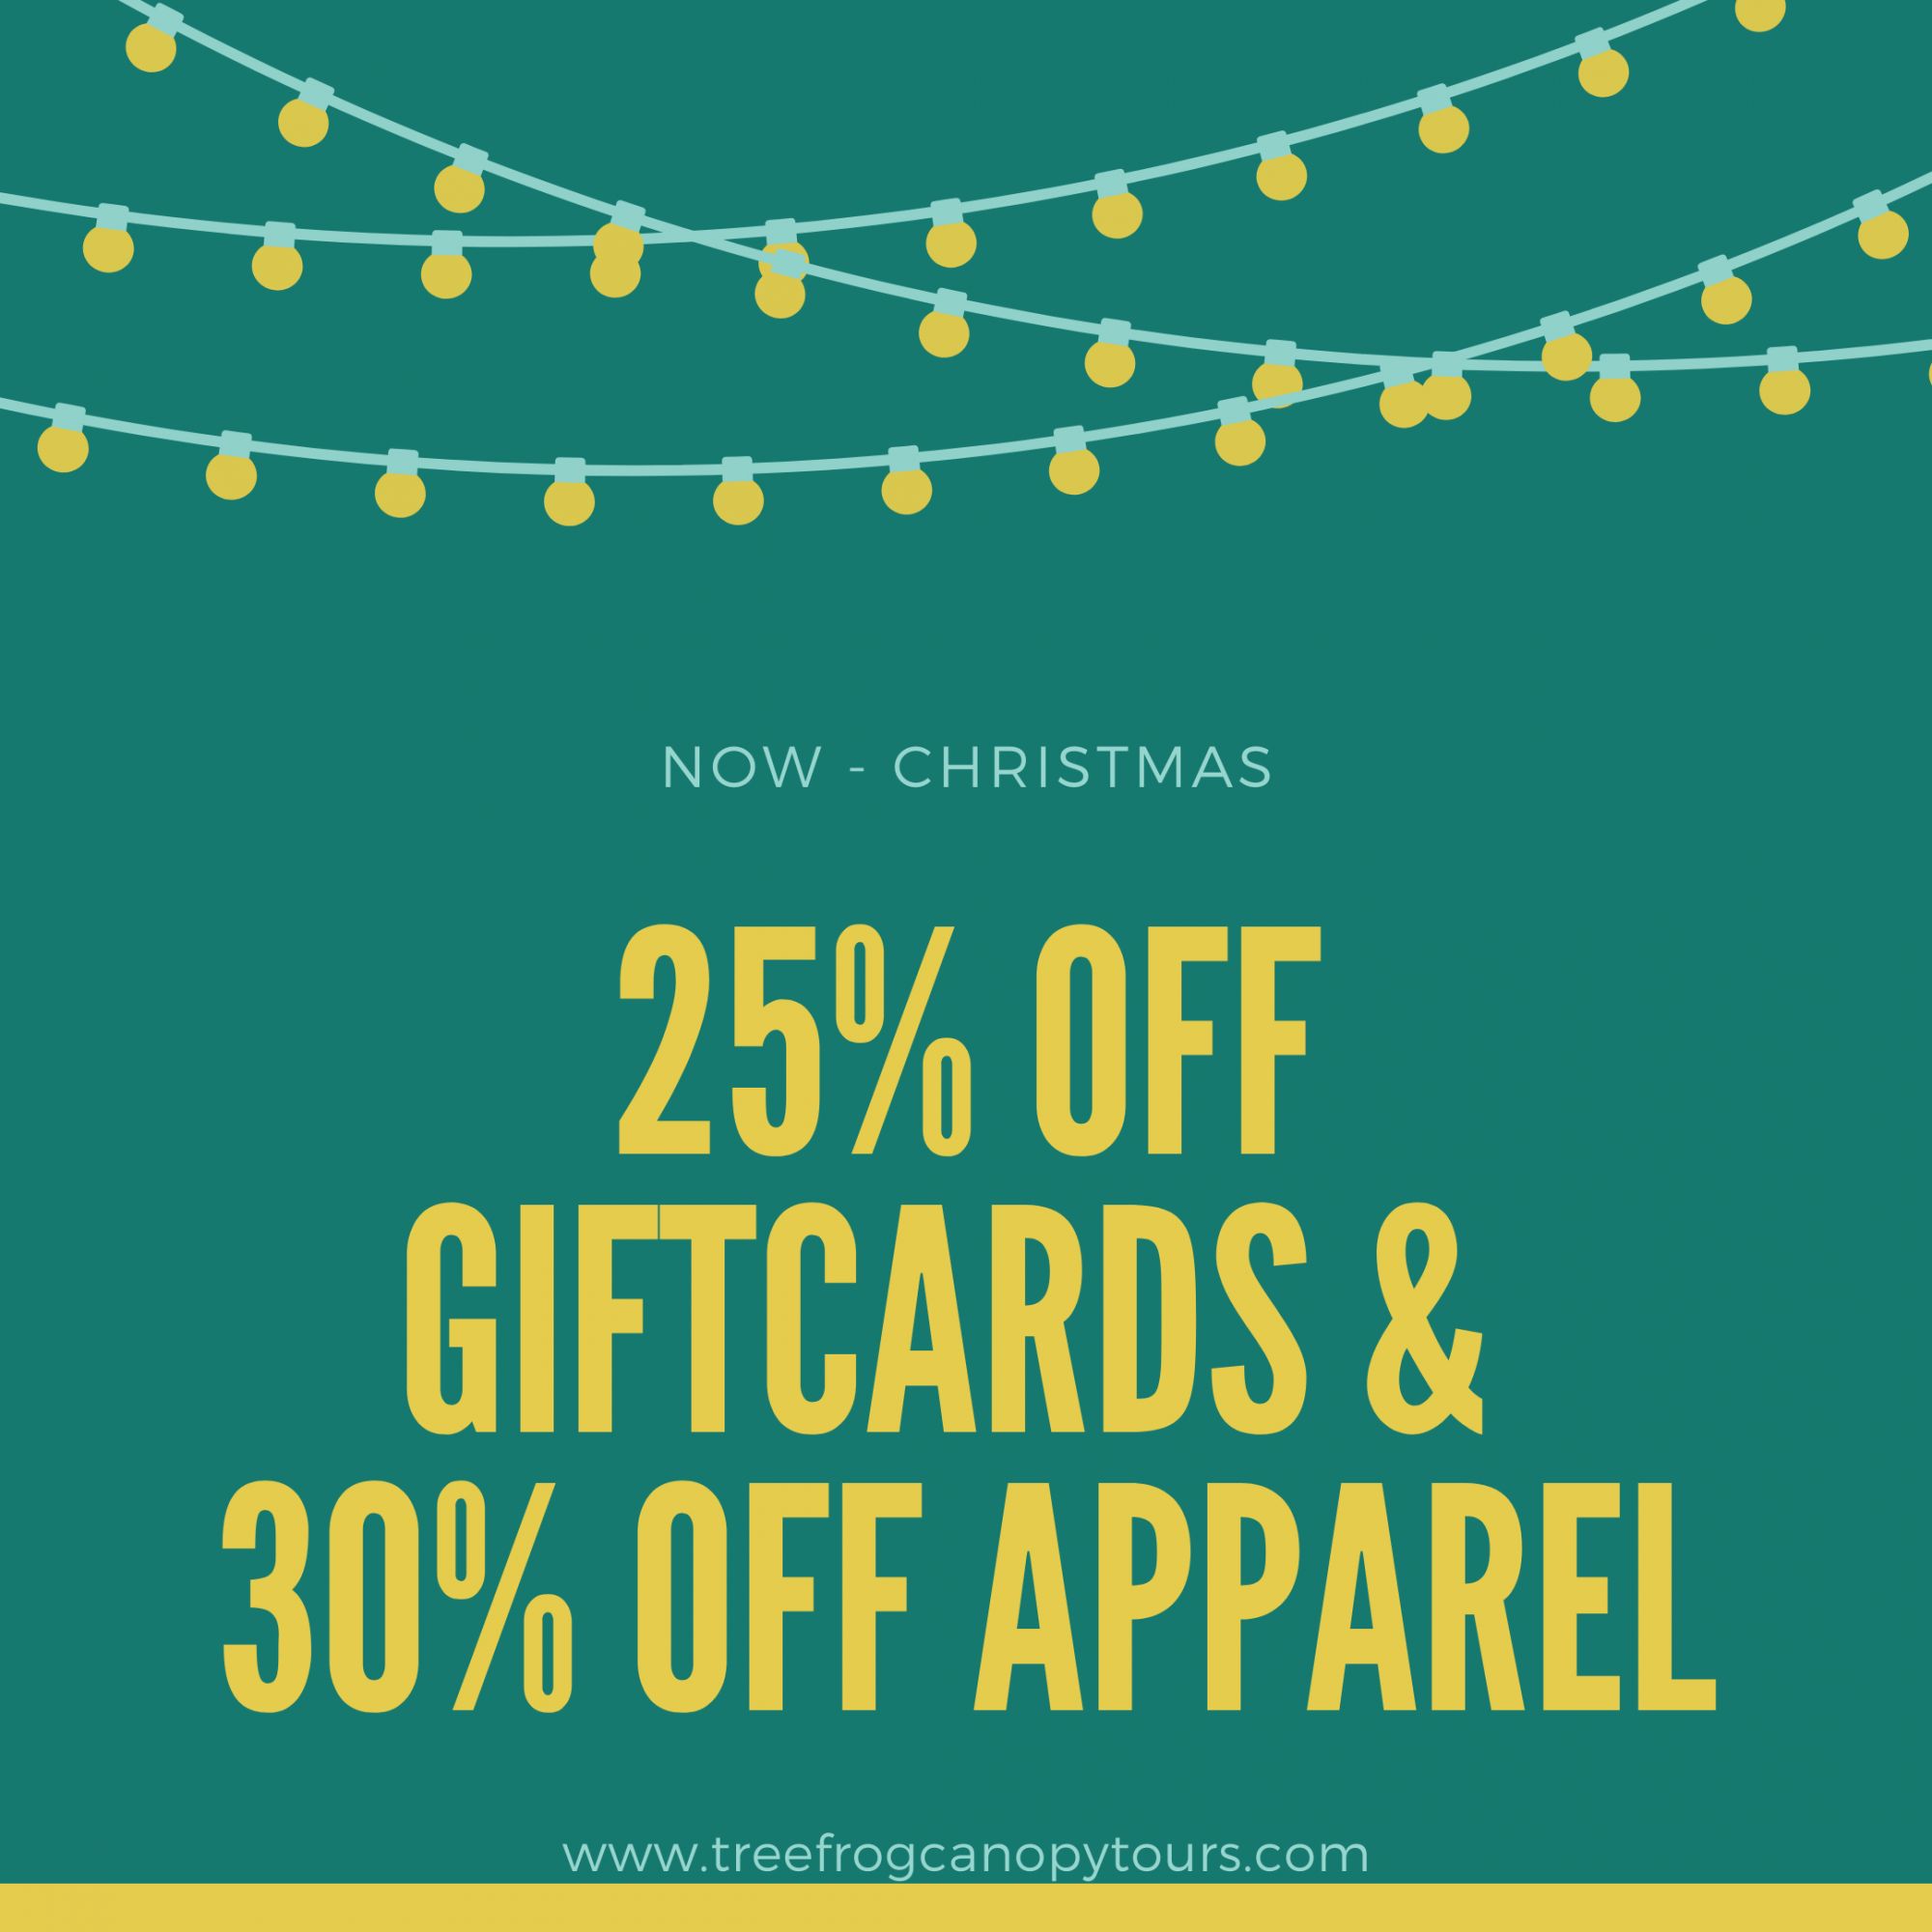 25% OFF ALL GIFTCARDS & 30% OFF ALL APPAREL